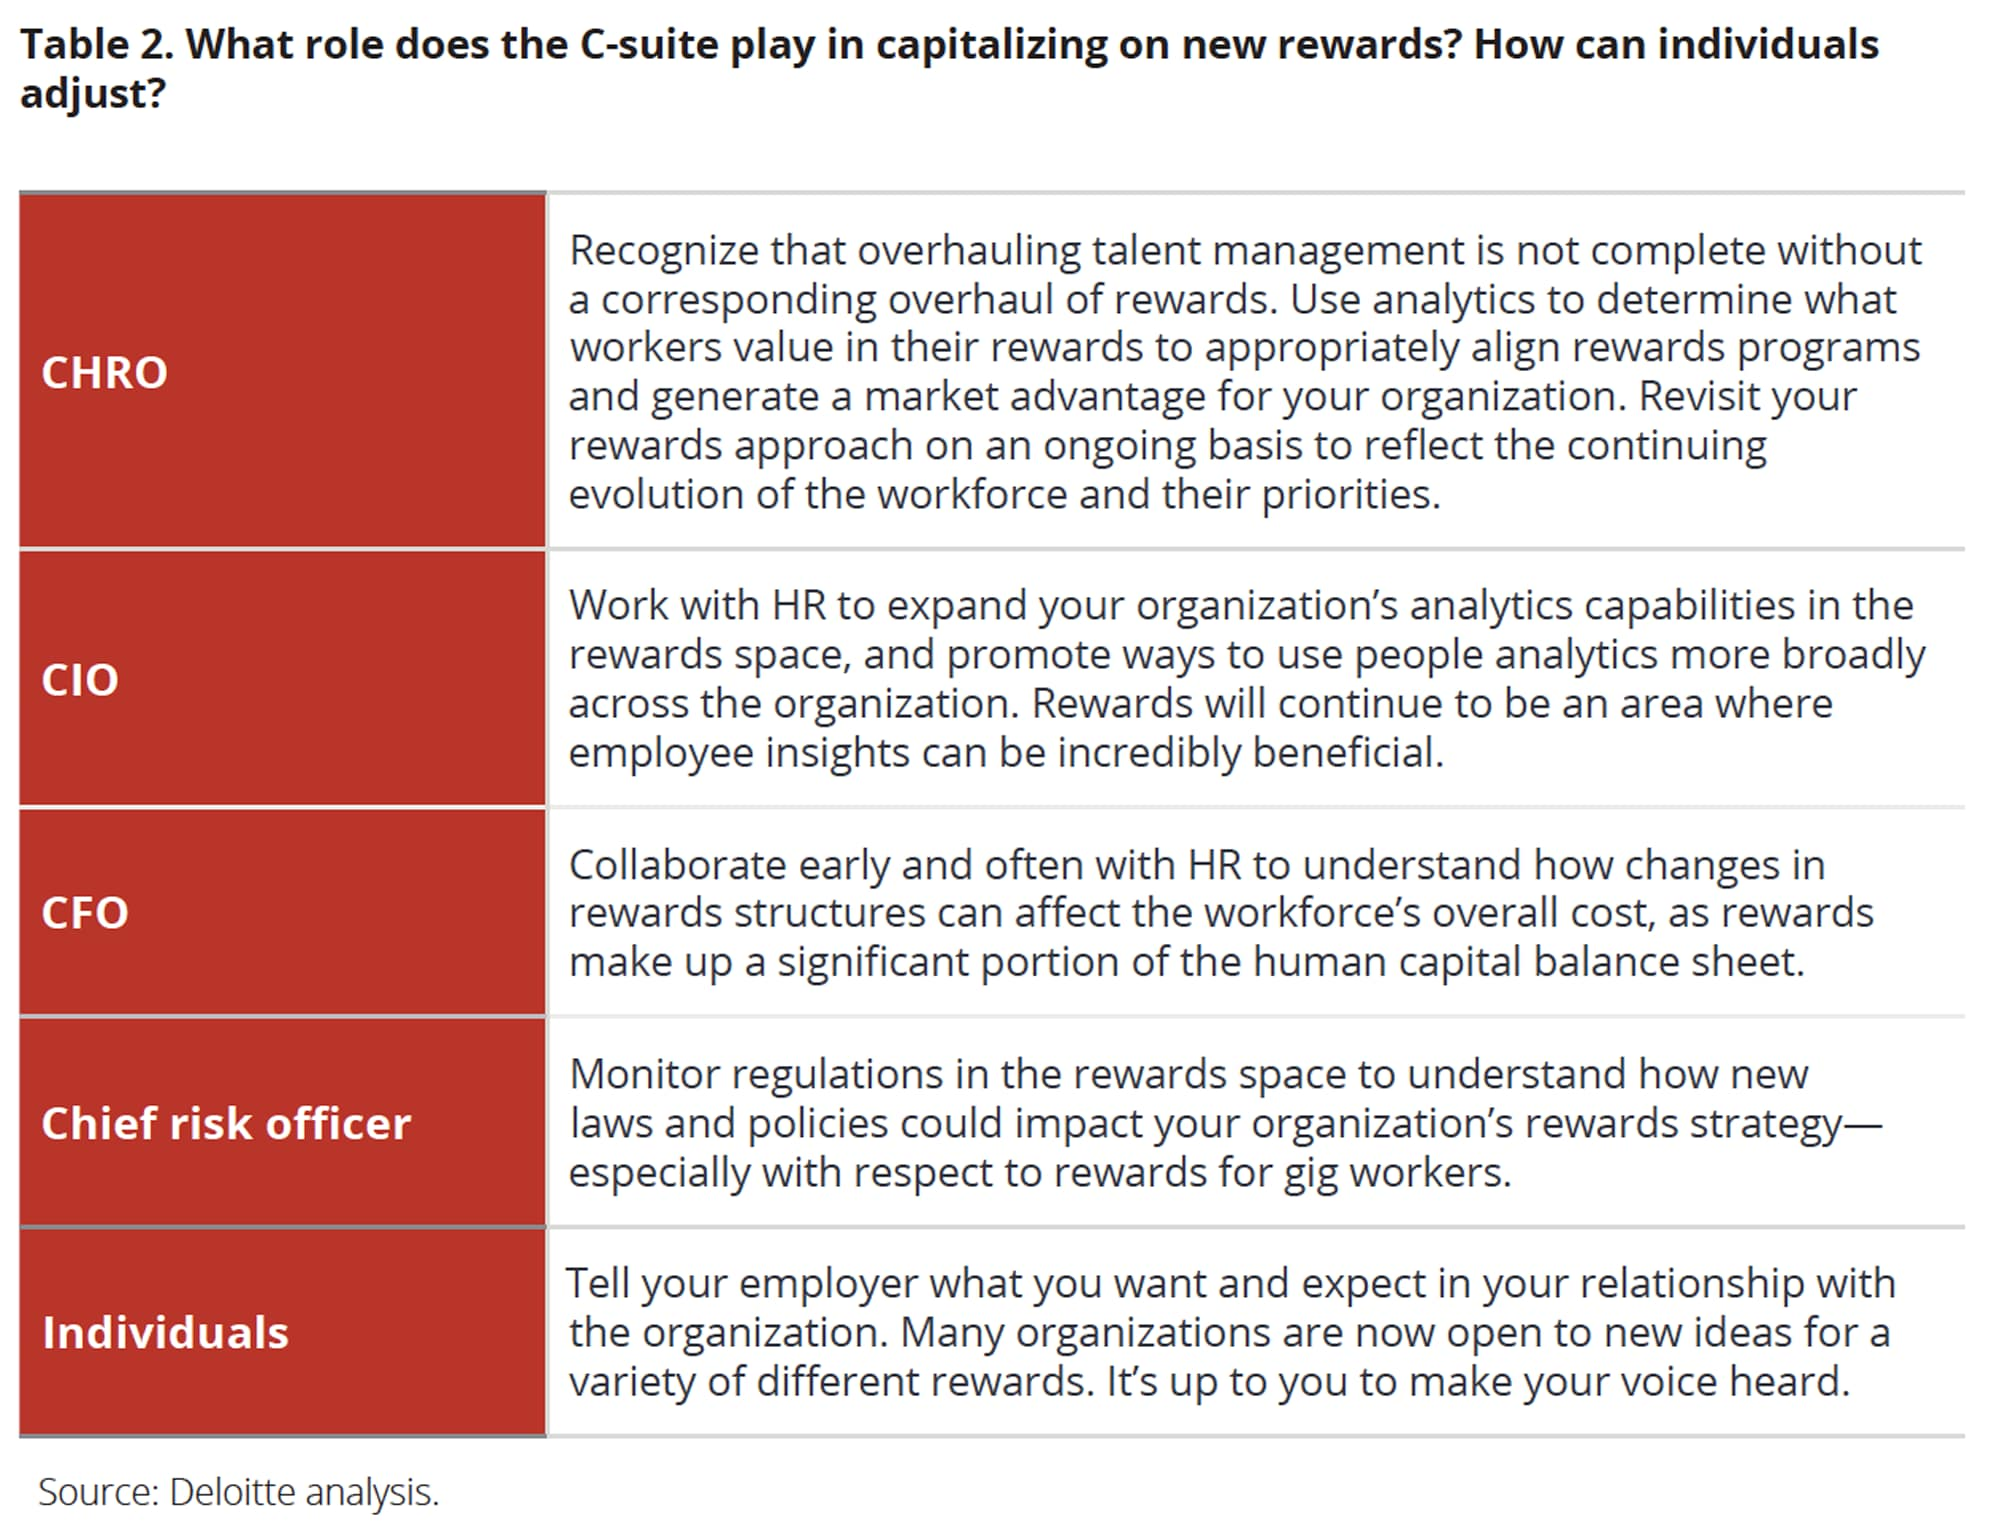 What role does the C-suite play in capitalizing on new rewards? How can individuals adjust?